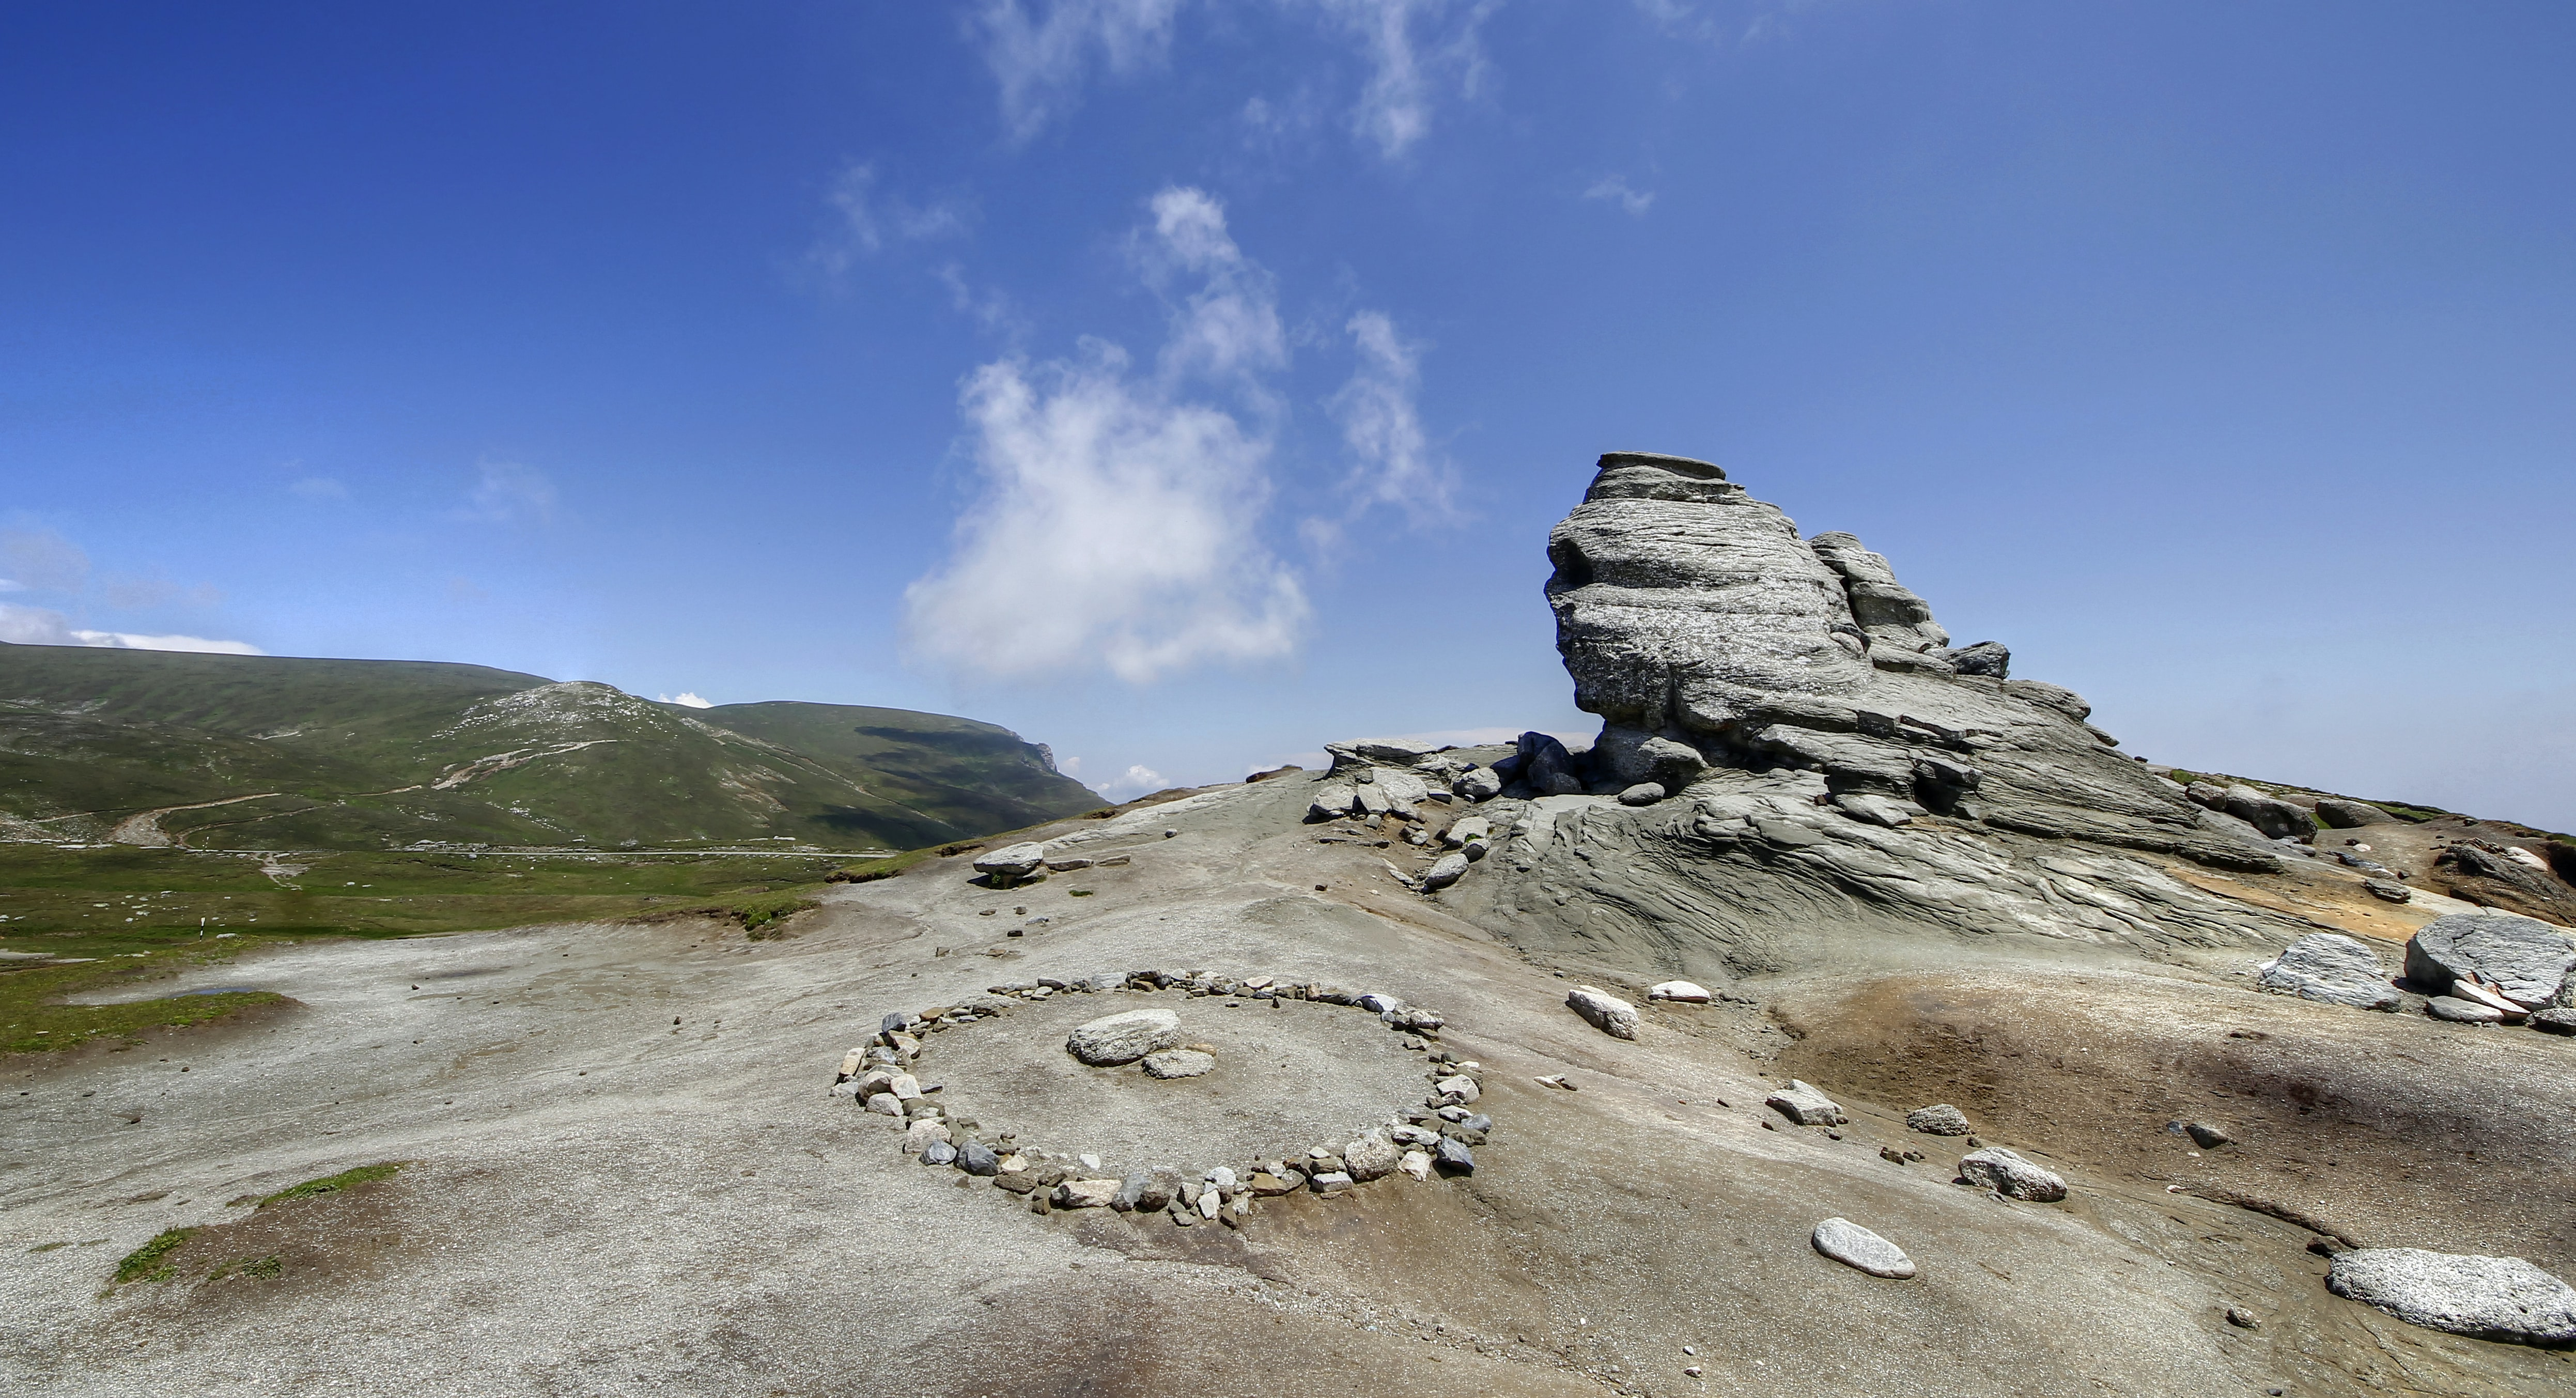 rock formation under the blue skies